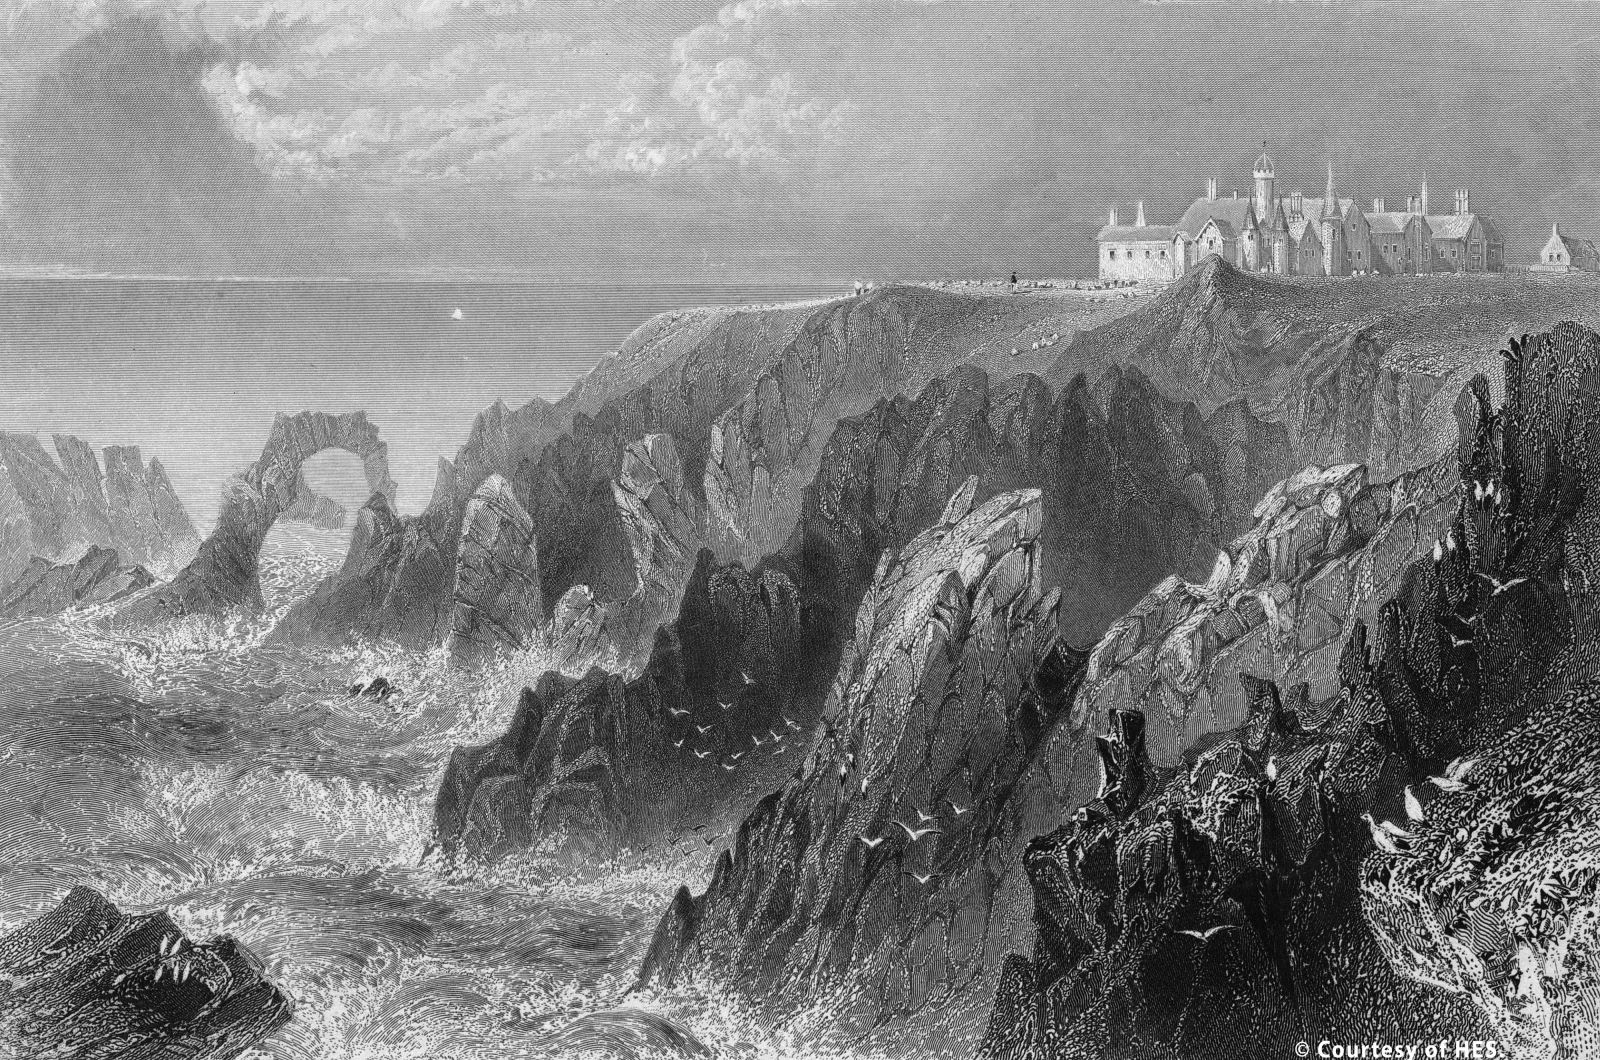 New Slains Castle with its Dracula connections